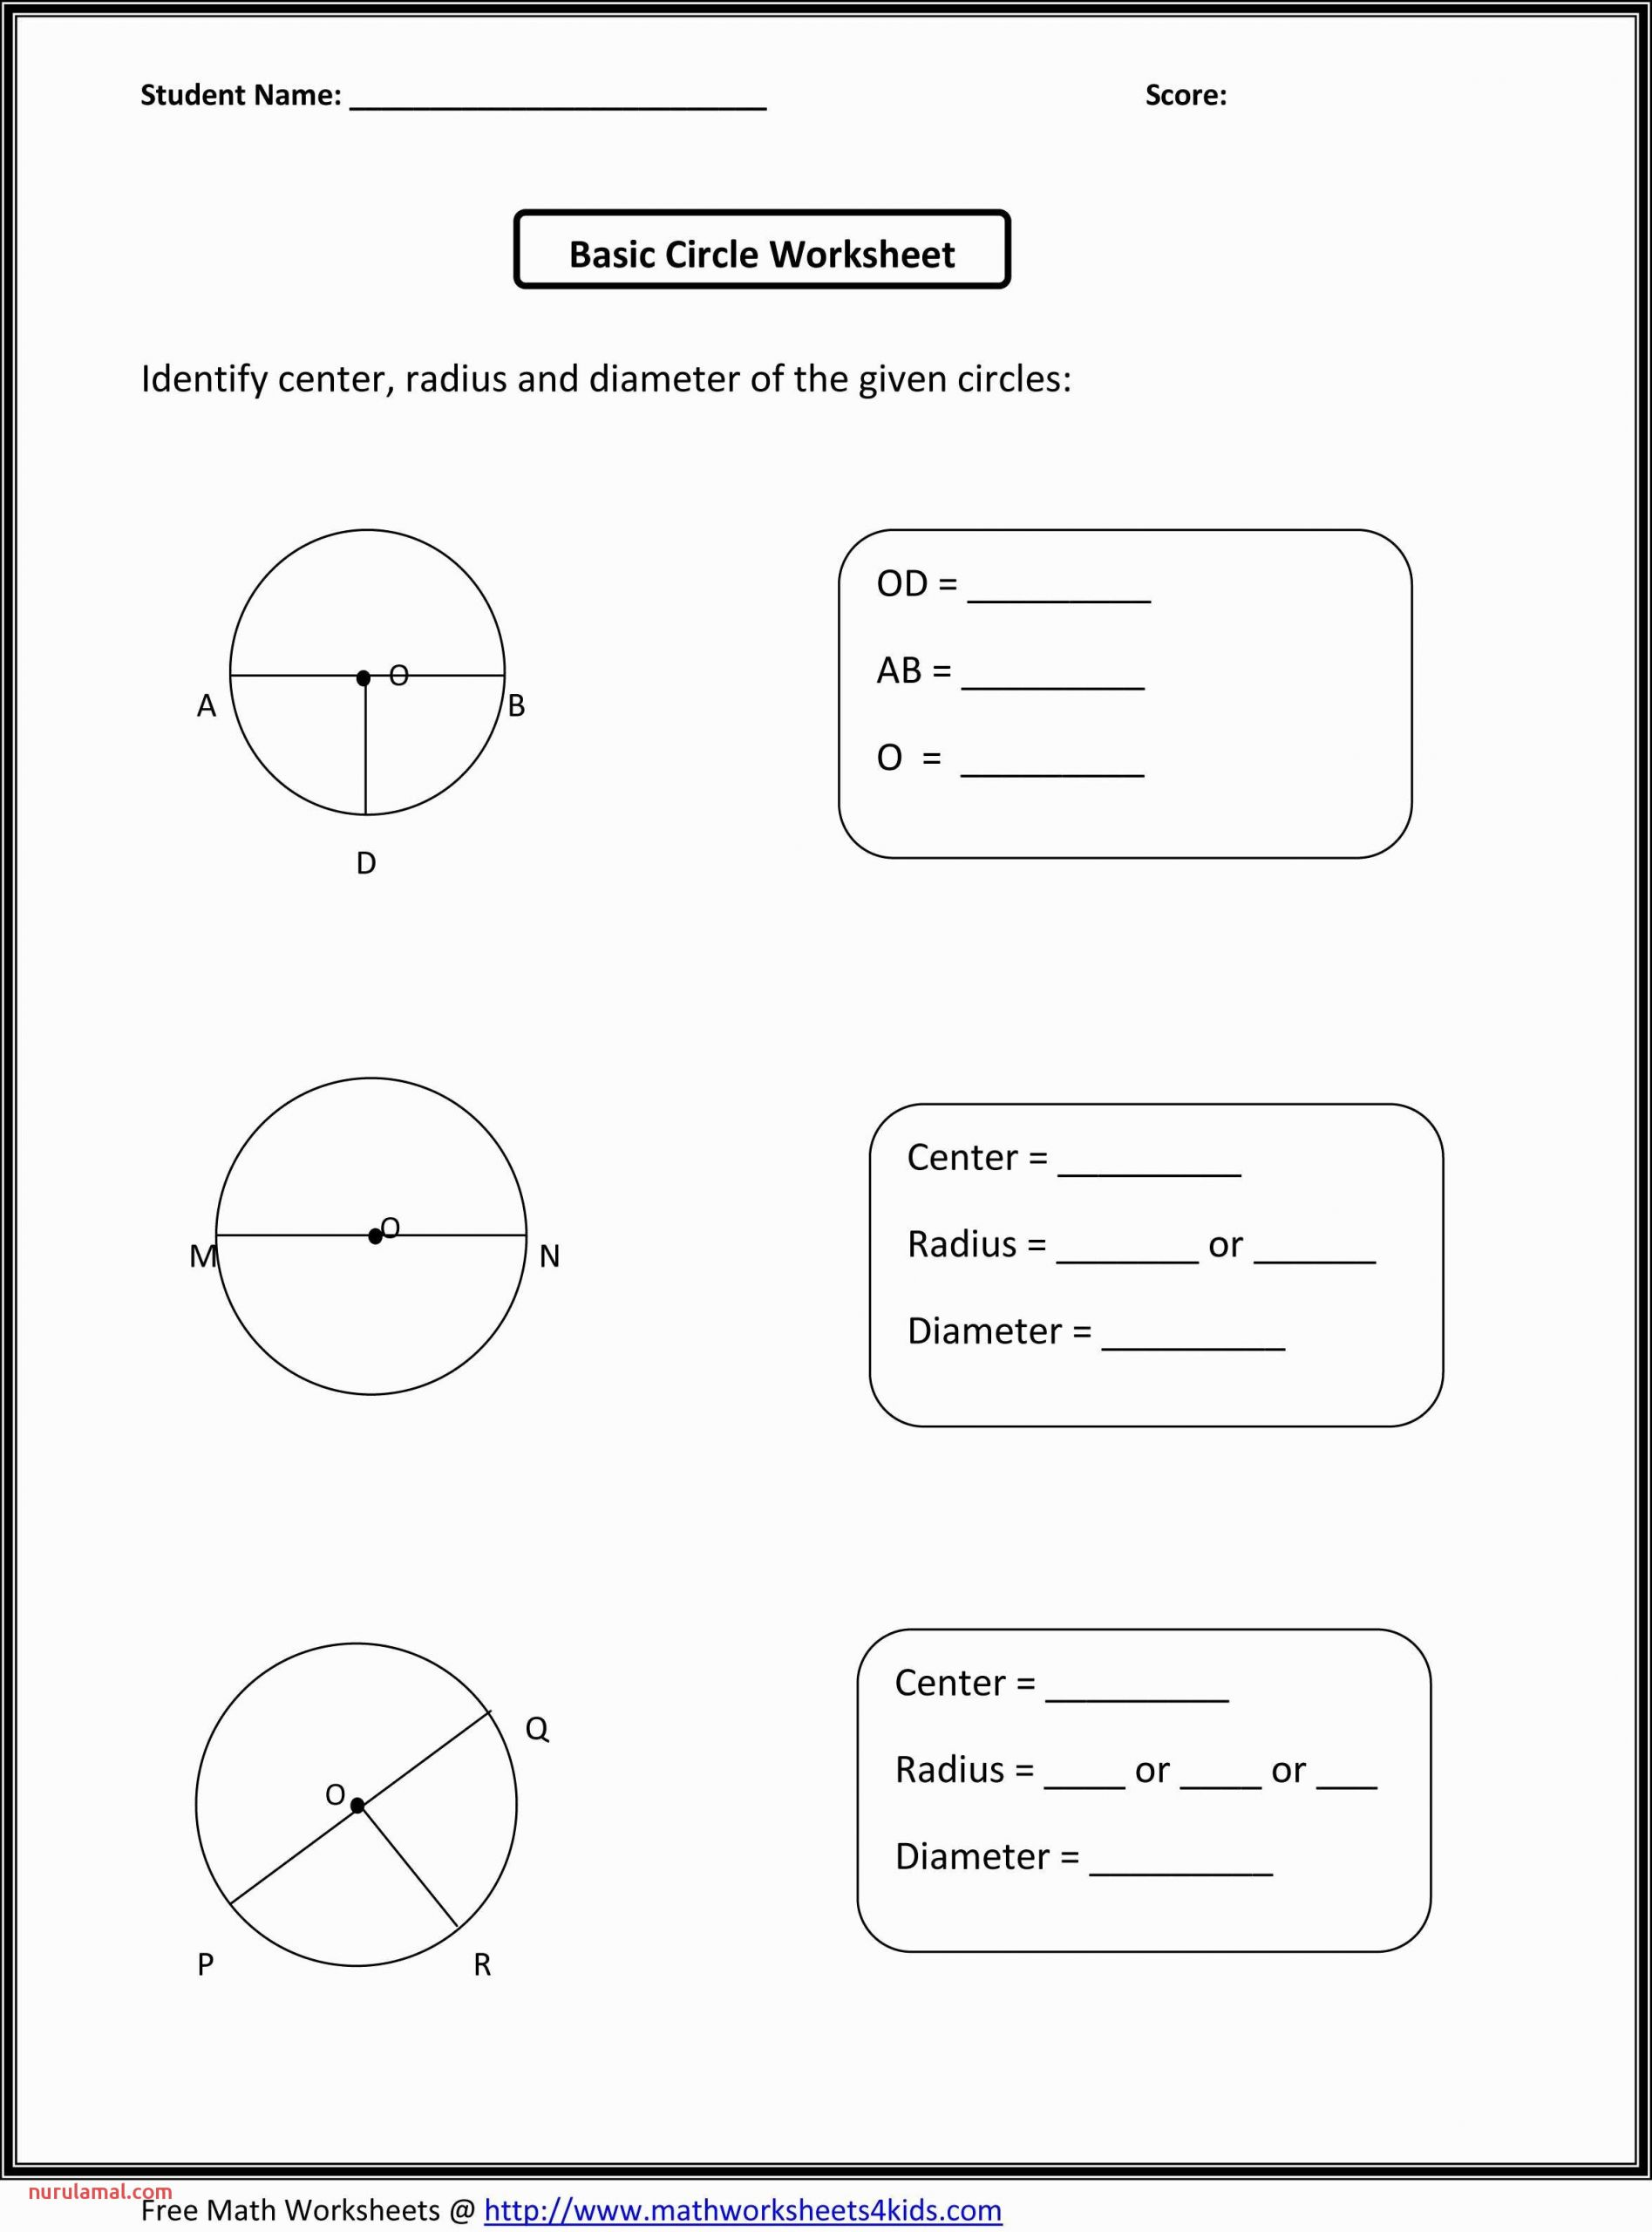 place value worksheets 5th grade to print